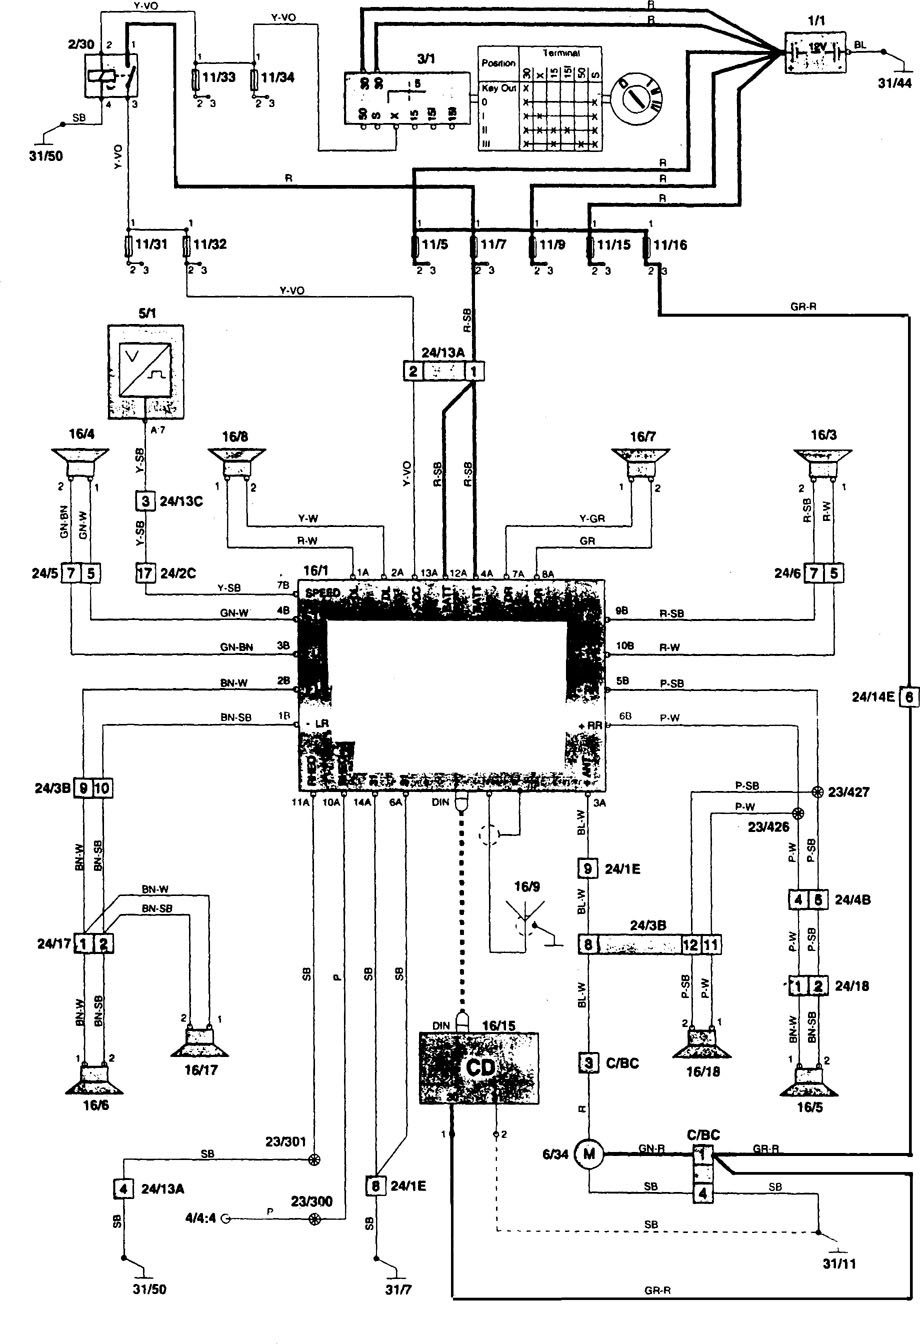 Volvo 850 (1996 - 1997) - wiring diagrams - audio - Carknowledge.info | 1997 Volvo 850 Wiring Diagram |  | Carknowledge.info